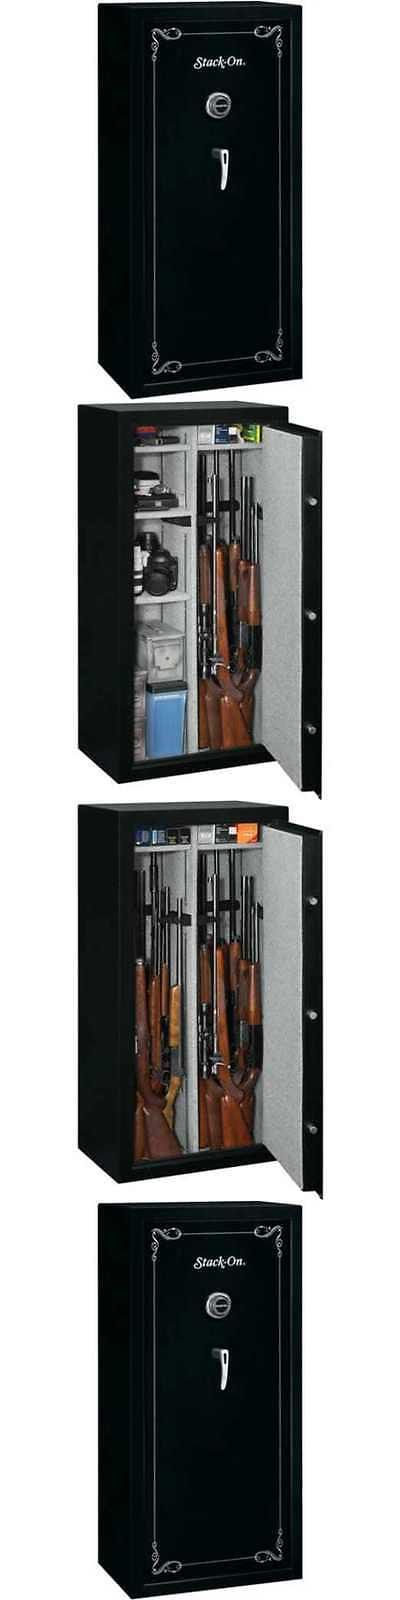 Cabinets and Safes 177877: Stack-On 22 Gun Safe With Combination Lock Matte Black Security Cabinet Rifle -> BUY IT NOW ONLY: $483.99 on eBay!